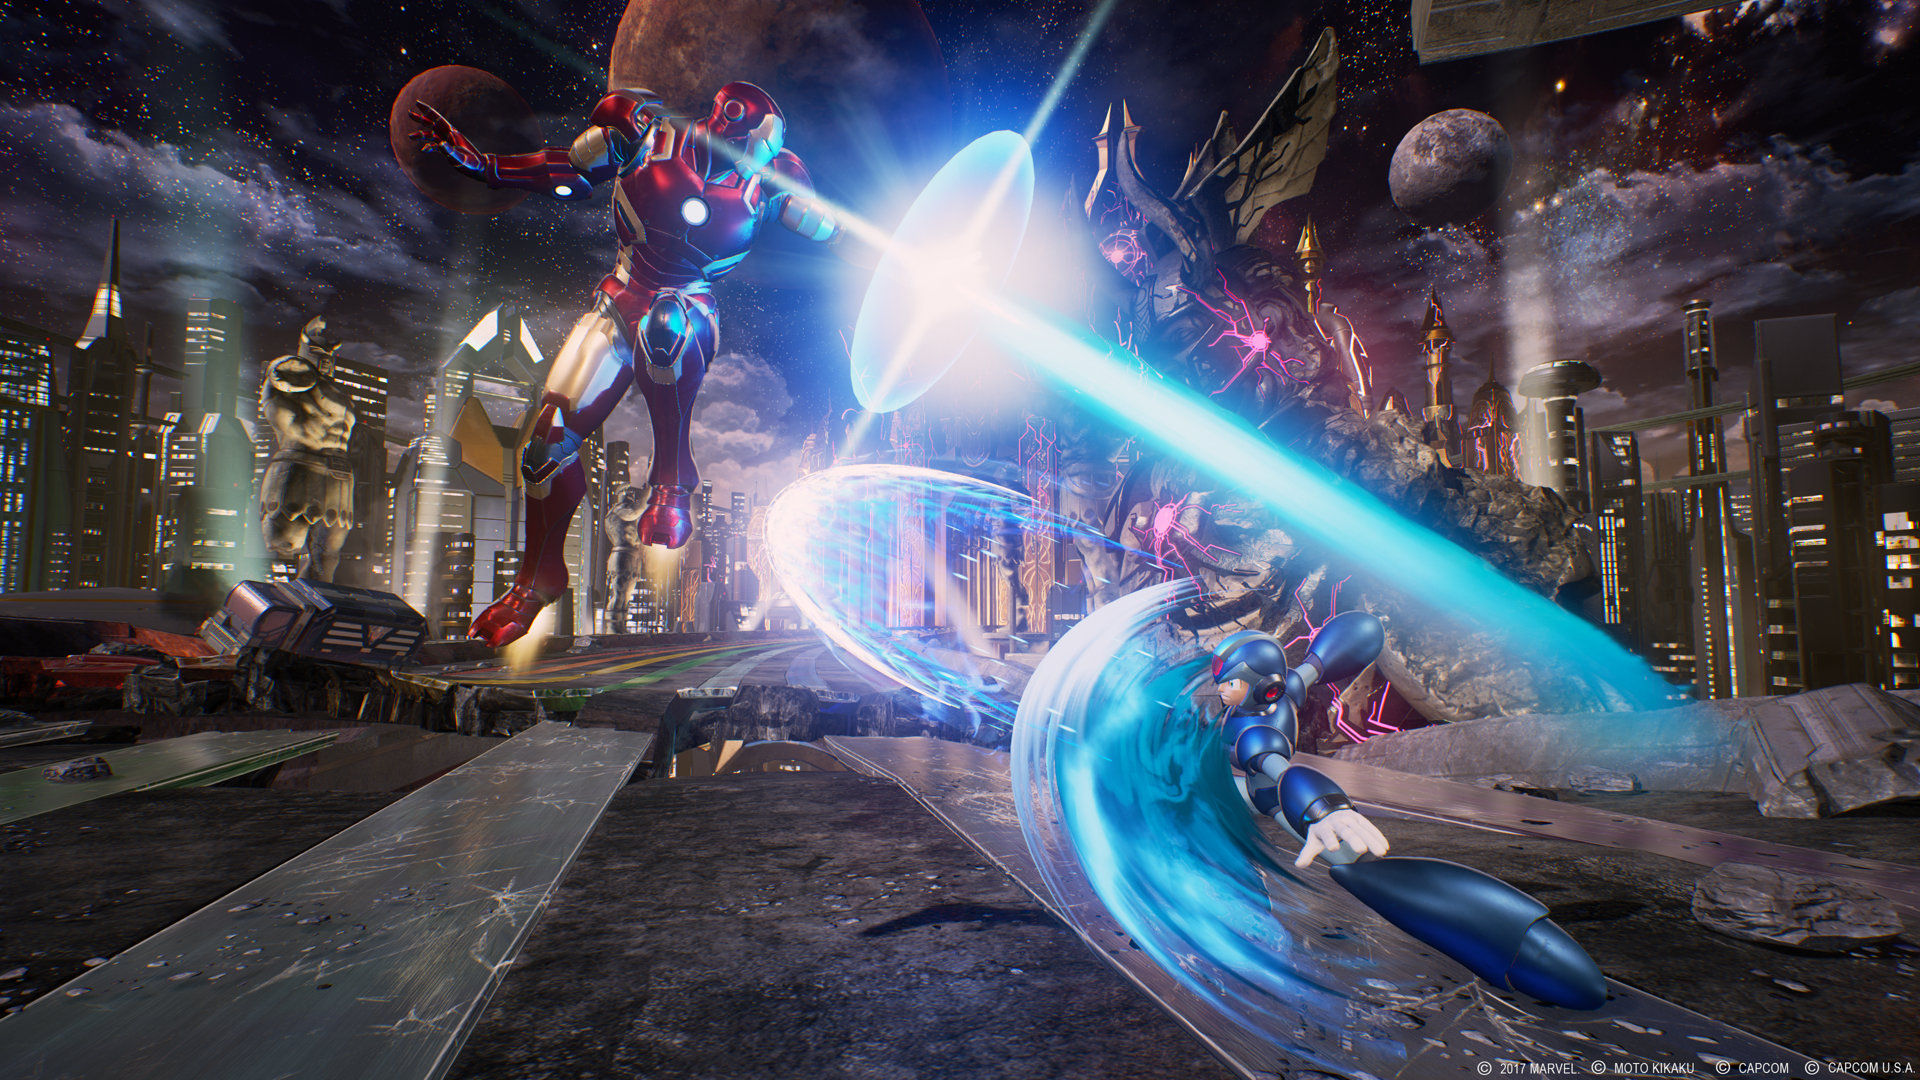 sho games mvci dbfz release grave already dead great wouldnt done either sure damage doing thing actual quite will just over cementing would think never dont dbfzs lmao yeah that shit coming without capcom infinite with going marvel under shadow since before been drunk take piss mean most